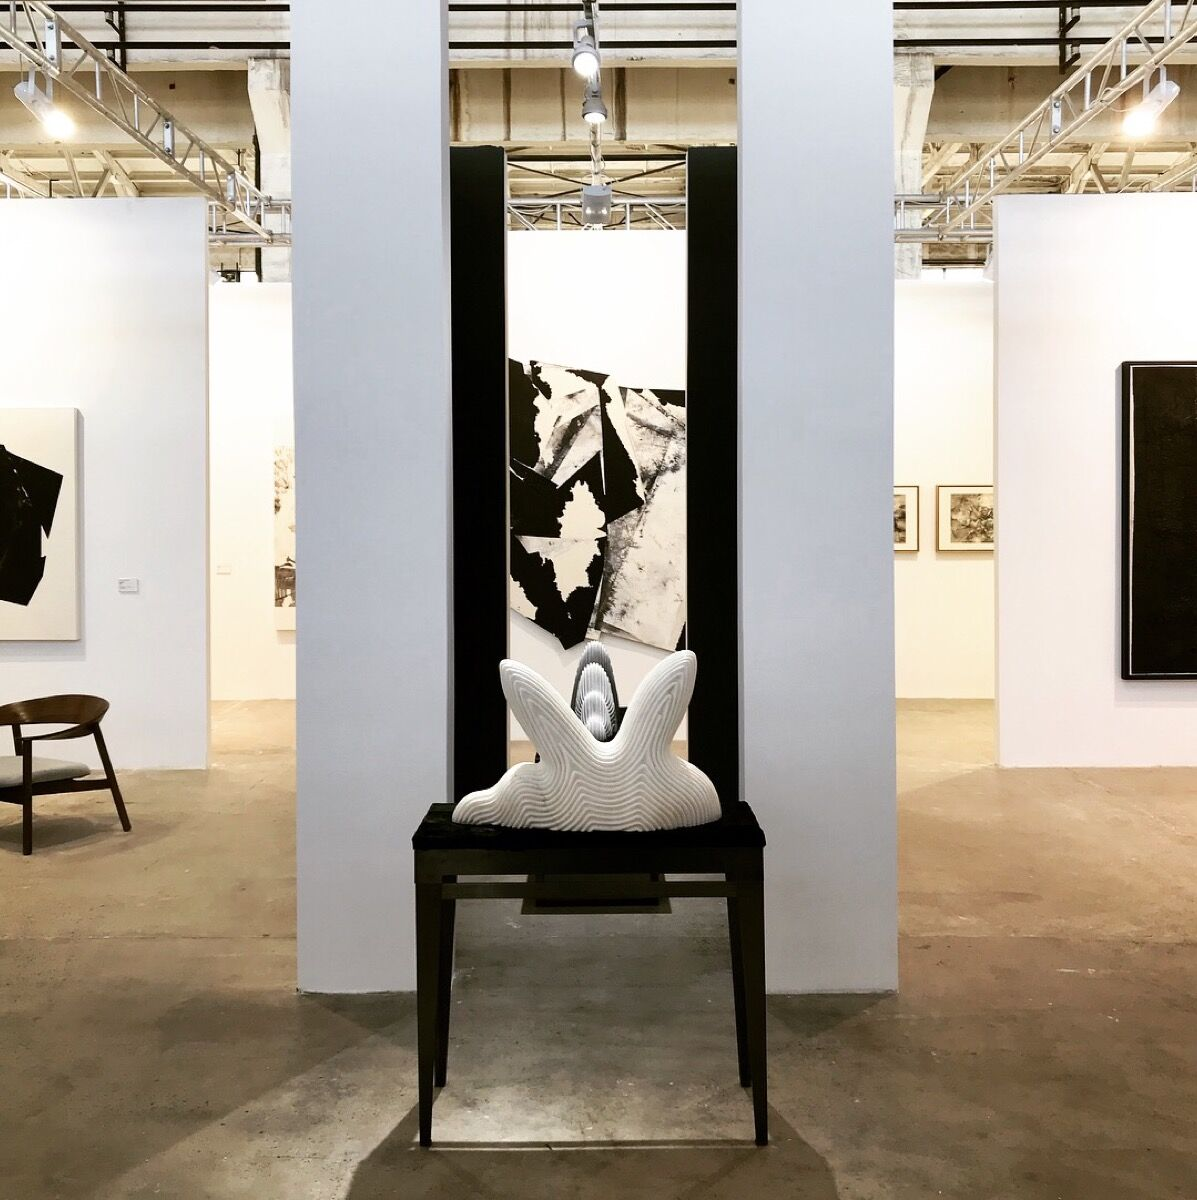 Installation view of Ink Studio's booth at West Bund Art & Design, 2017. Courtesy of Ink Studio.